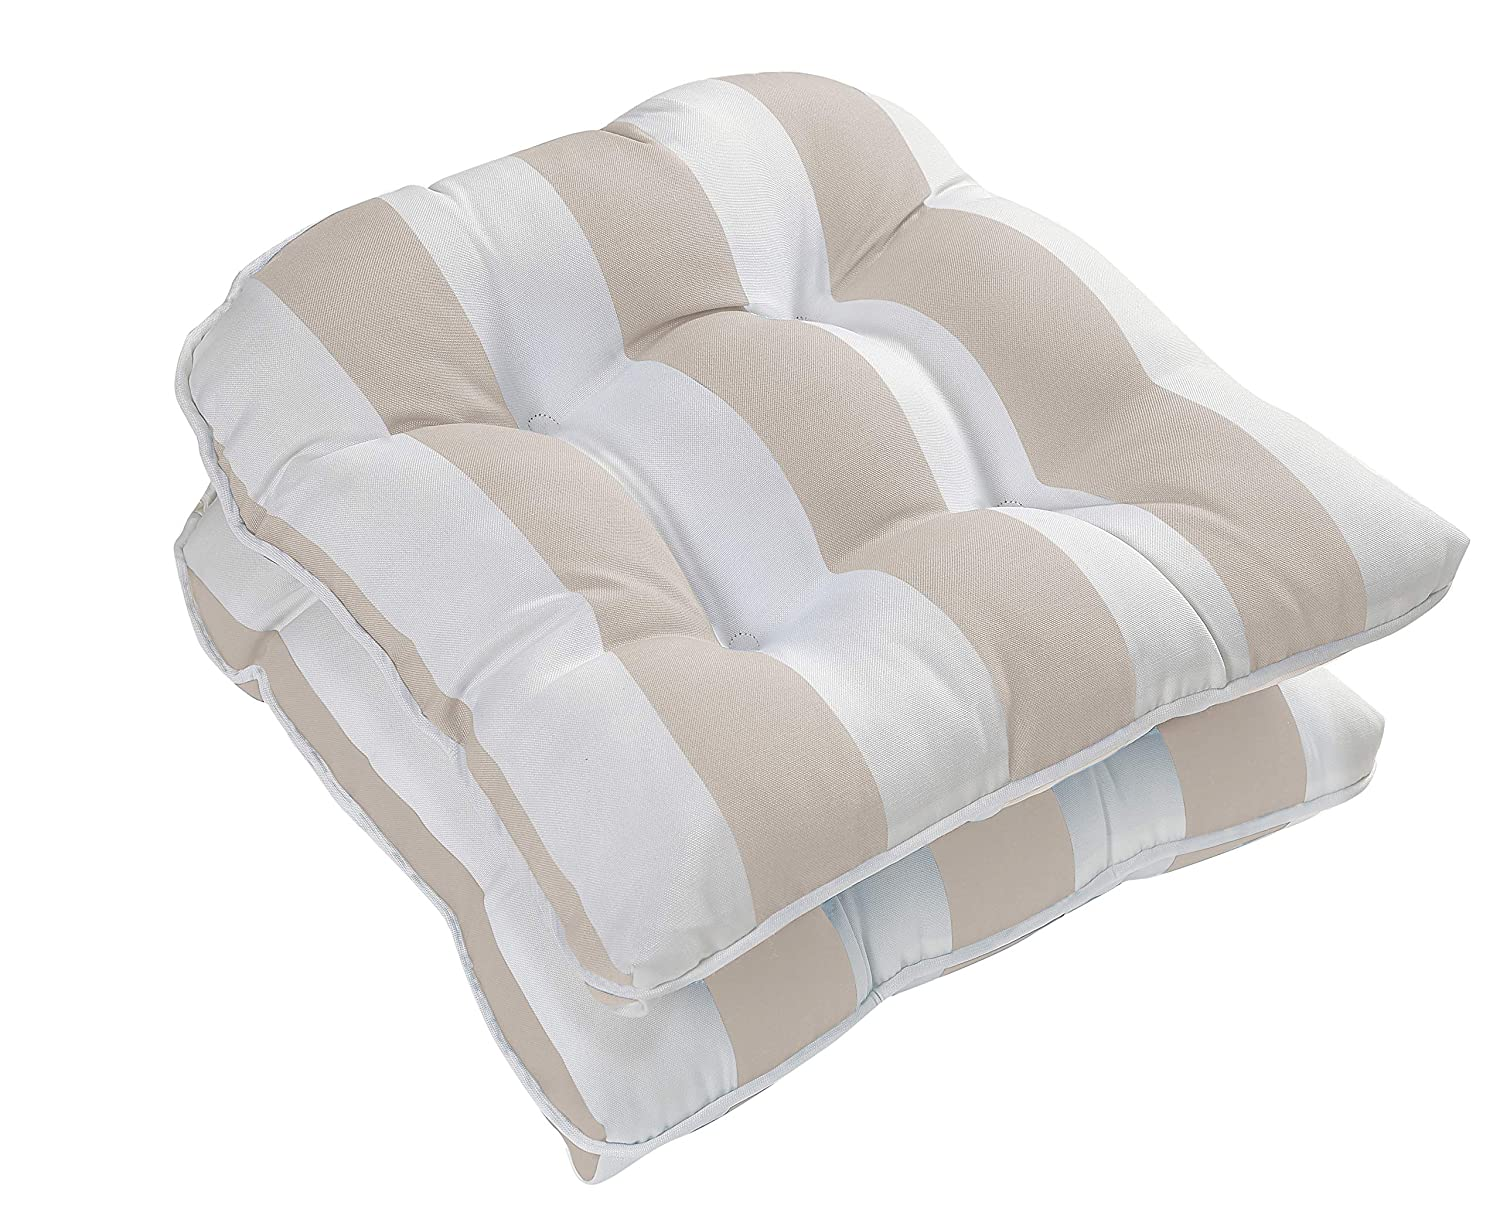 Set of 2 Beige Ornavo Home Water Resistant Indoor//Outdoor Patio Decorative Stripe Tufted Wicker Chair Seat Cushion Pad